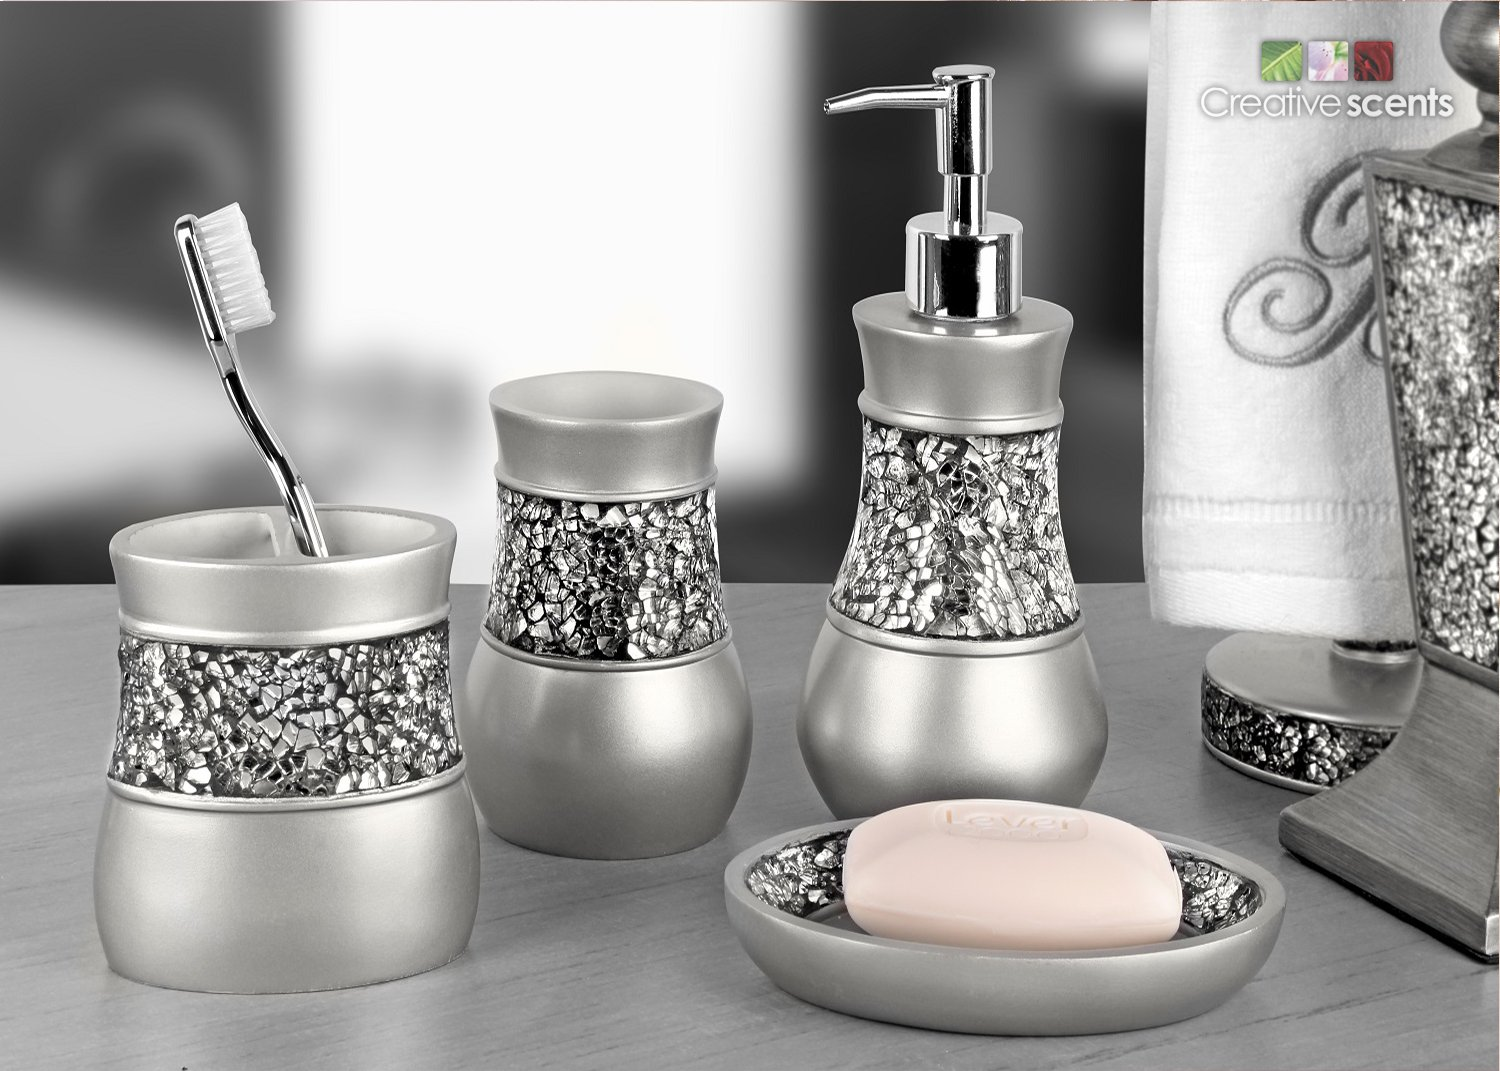 Creative Scents Brushed Nickel Bathroom Accessories Set 4 Piece